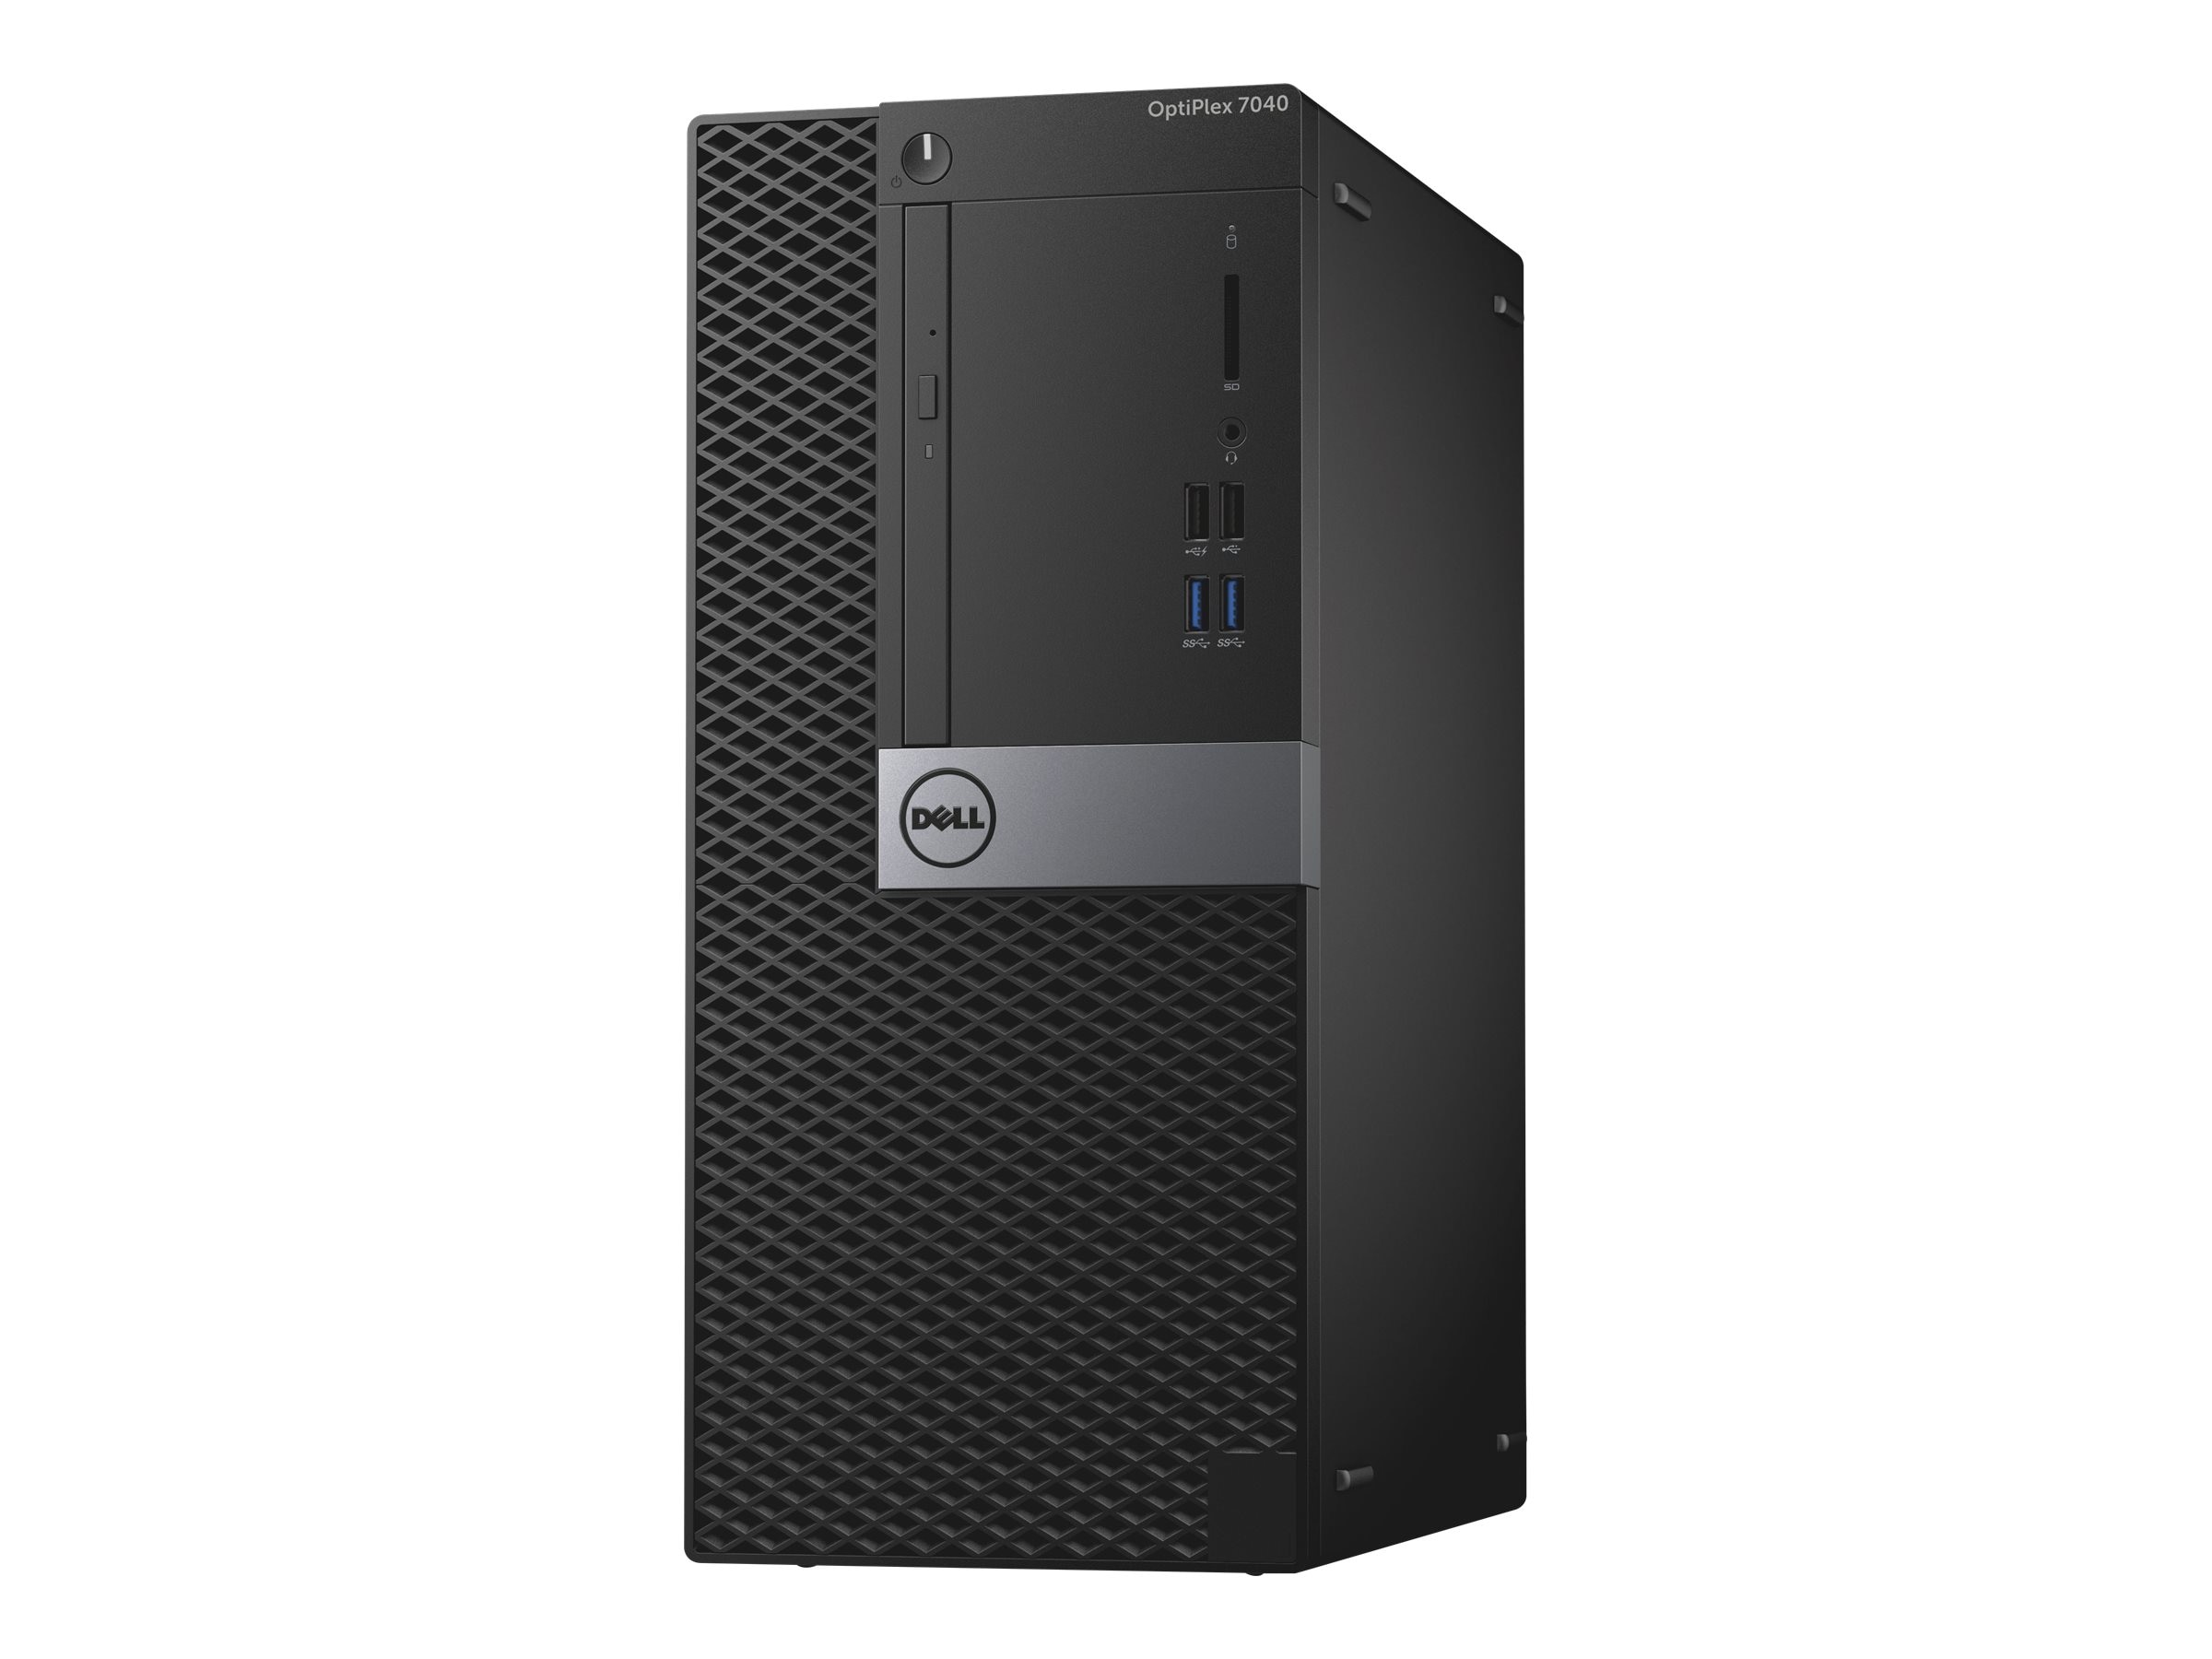 Dell OptiPlex 7040 3.4GHz Core i7 8GB RAM 1TB hard drive, 7J5G2, 30819041, Desktops